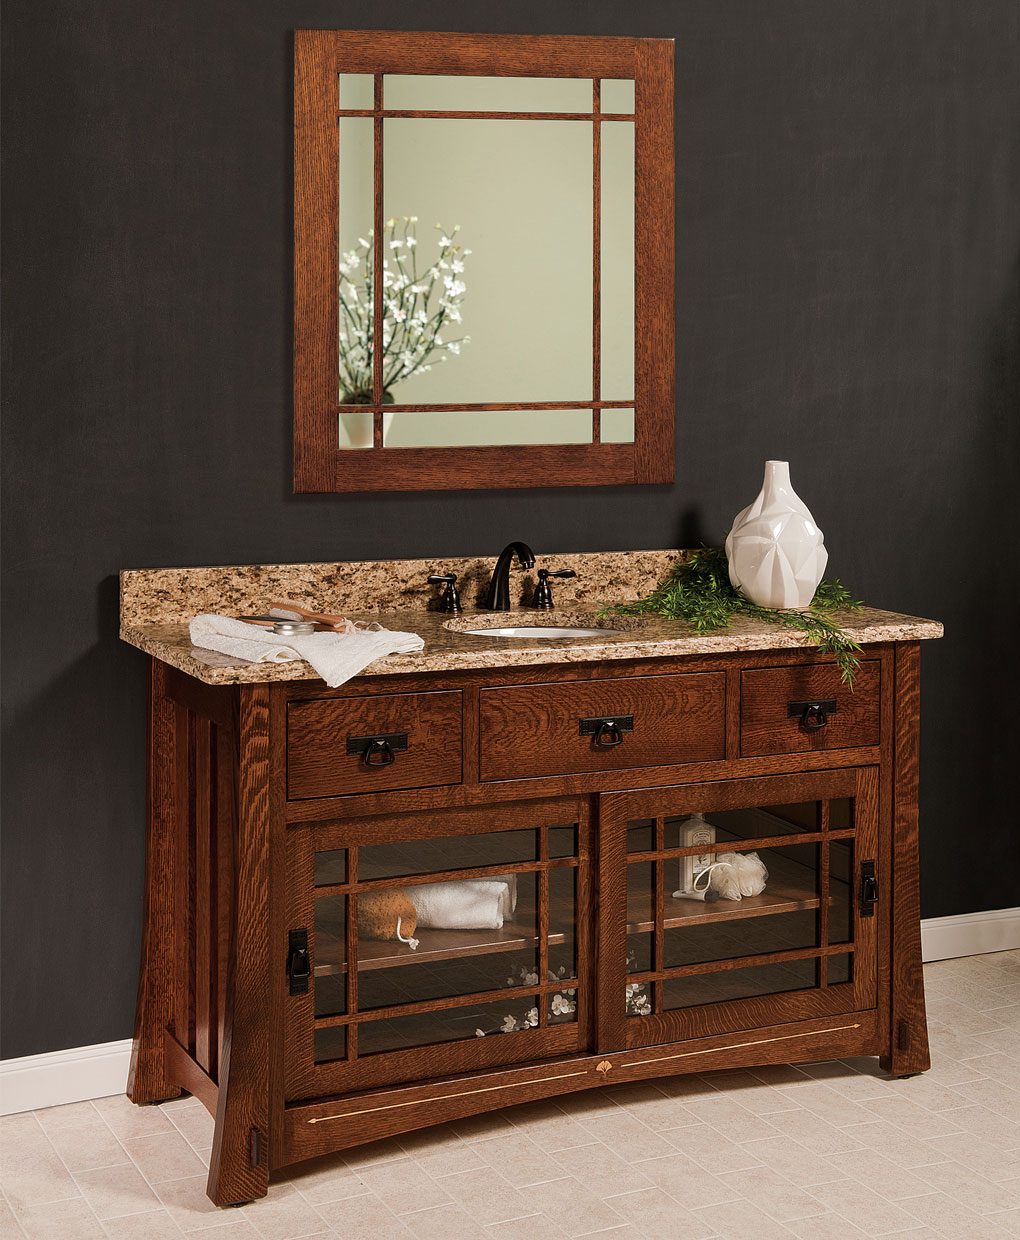 Best Bathroom Vanity Furniture